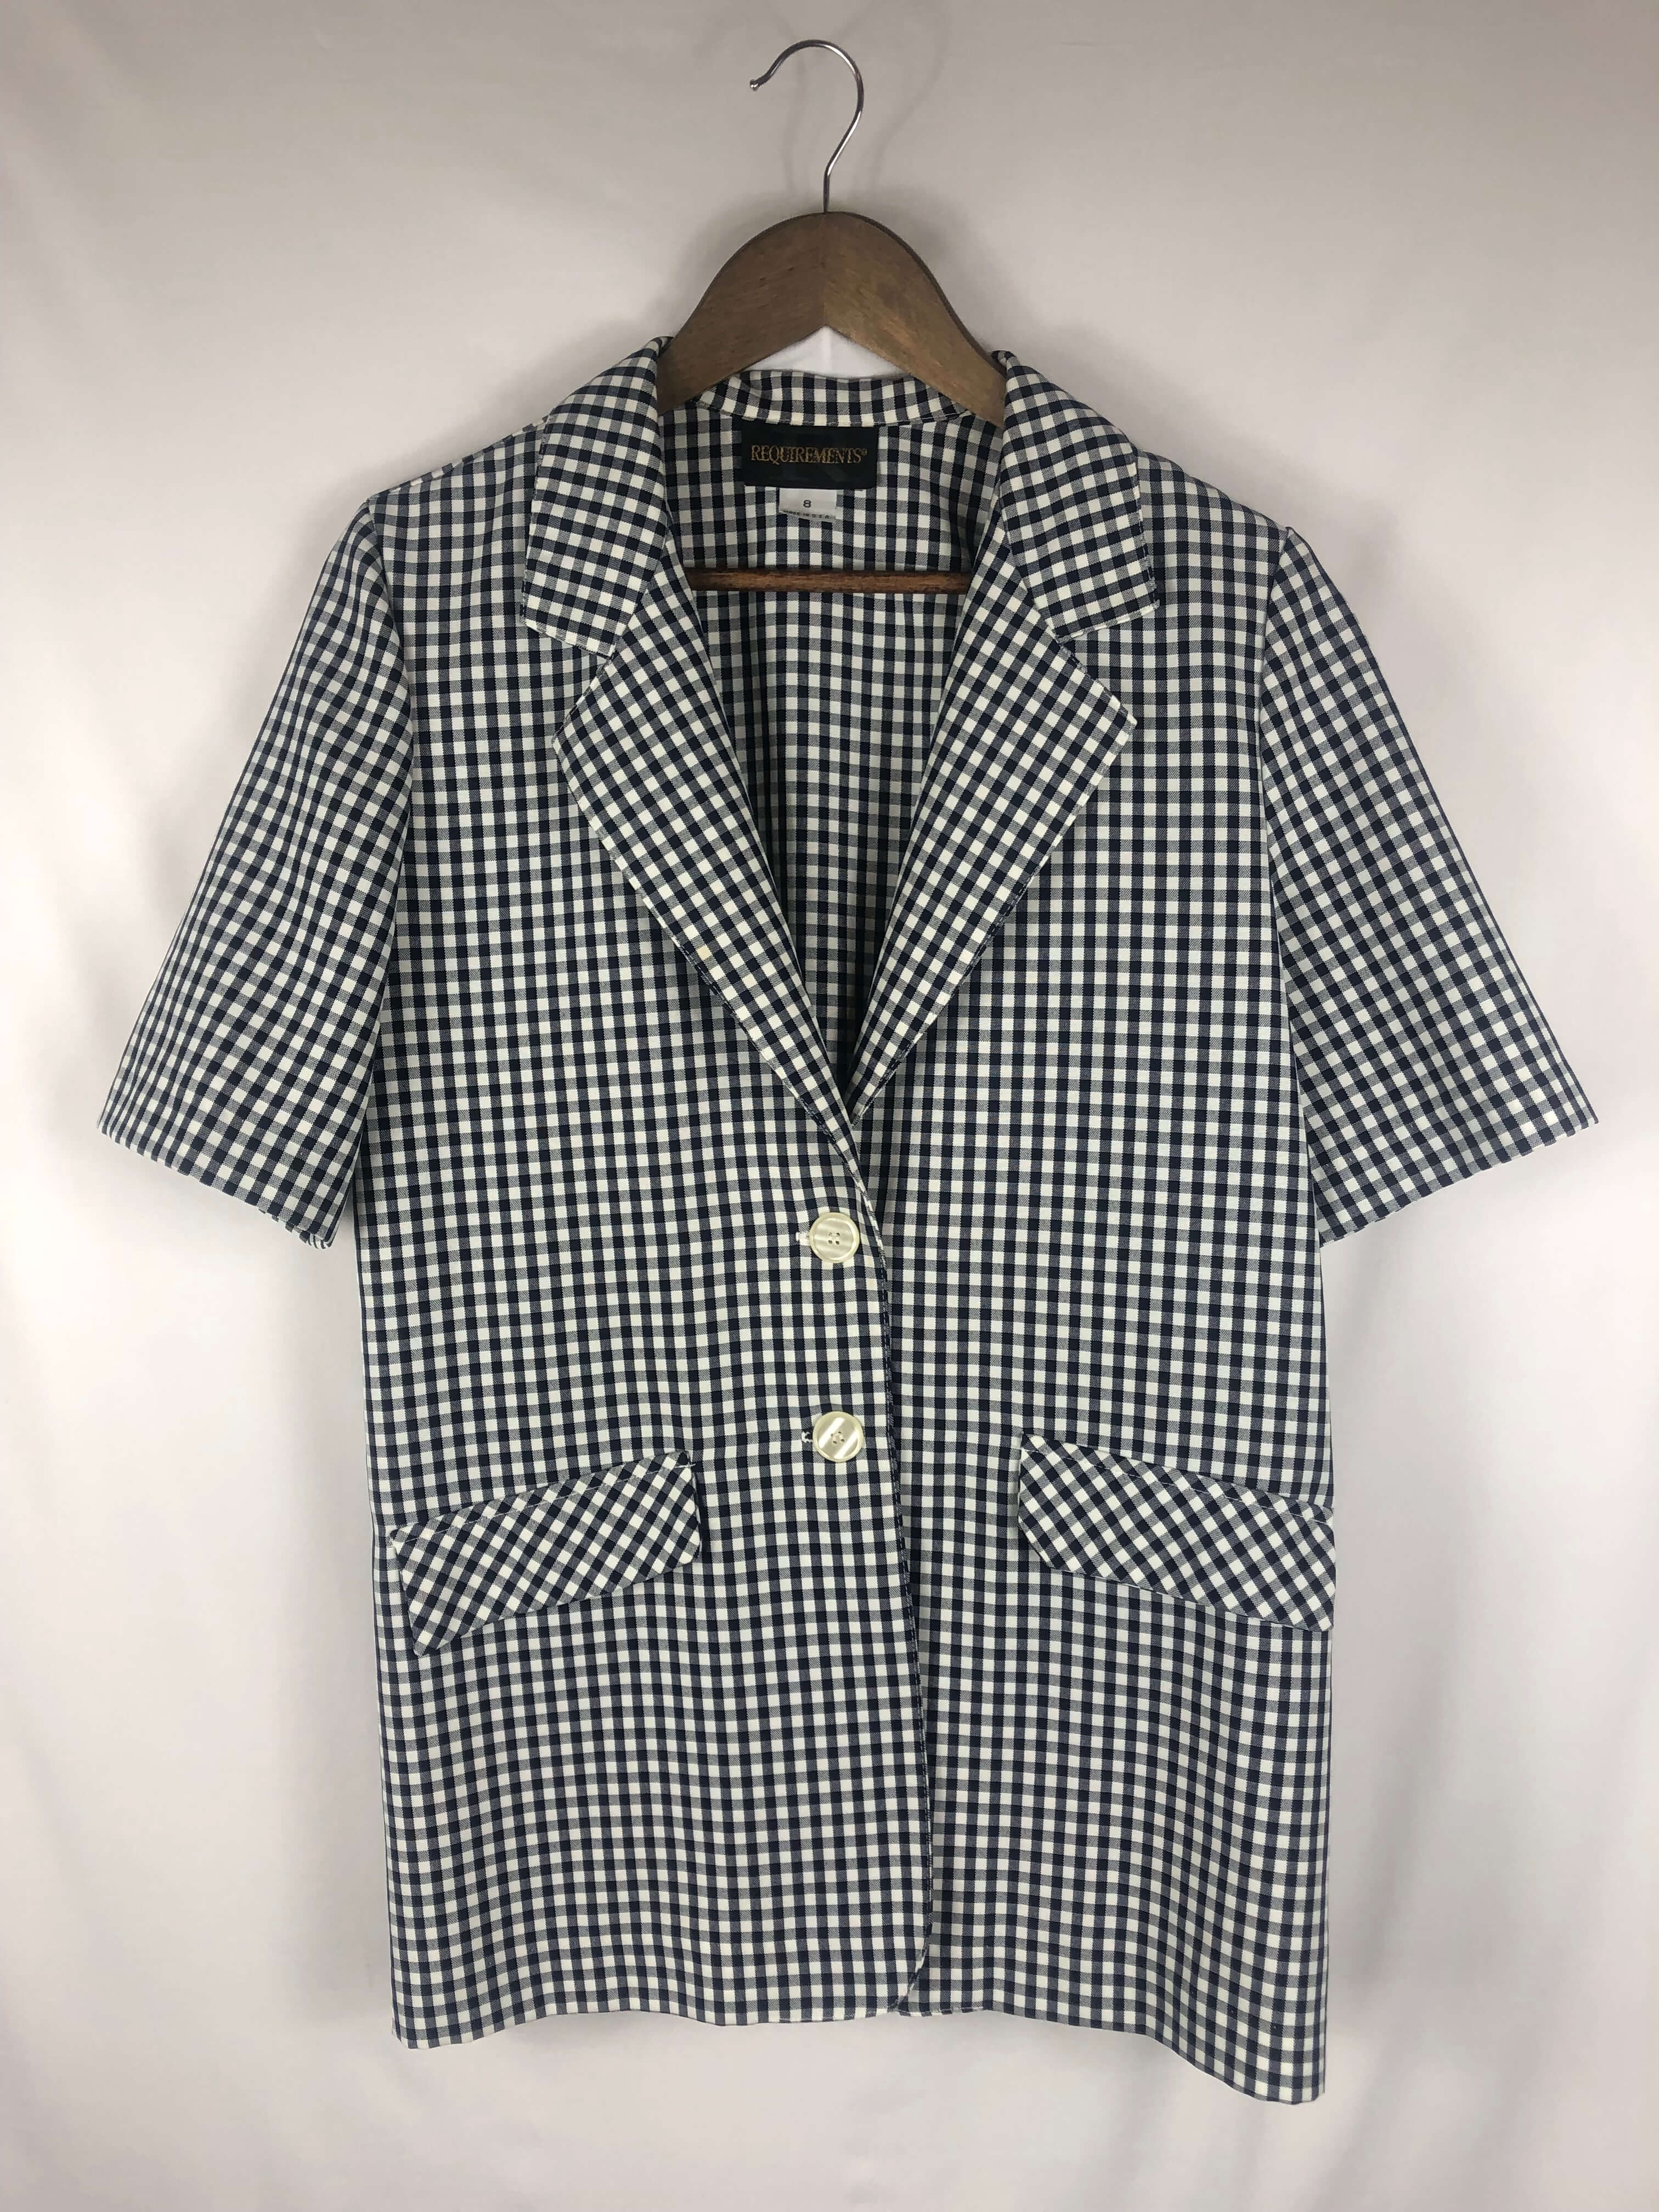 Picnic Print Short Sleeve Jacket - Size: Vintage 8 *Modern Best Fits: Small